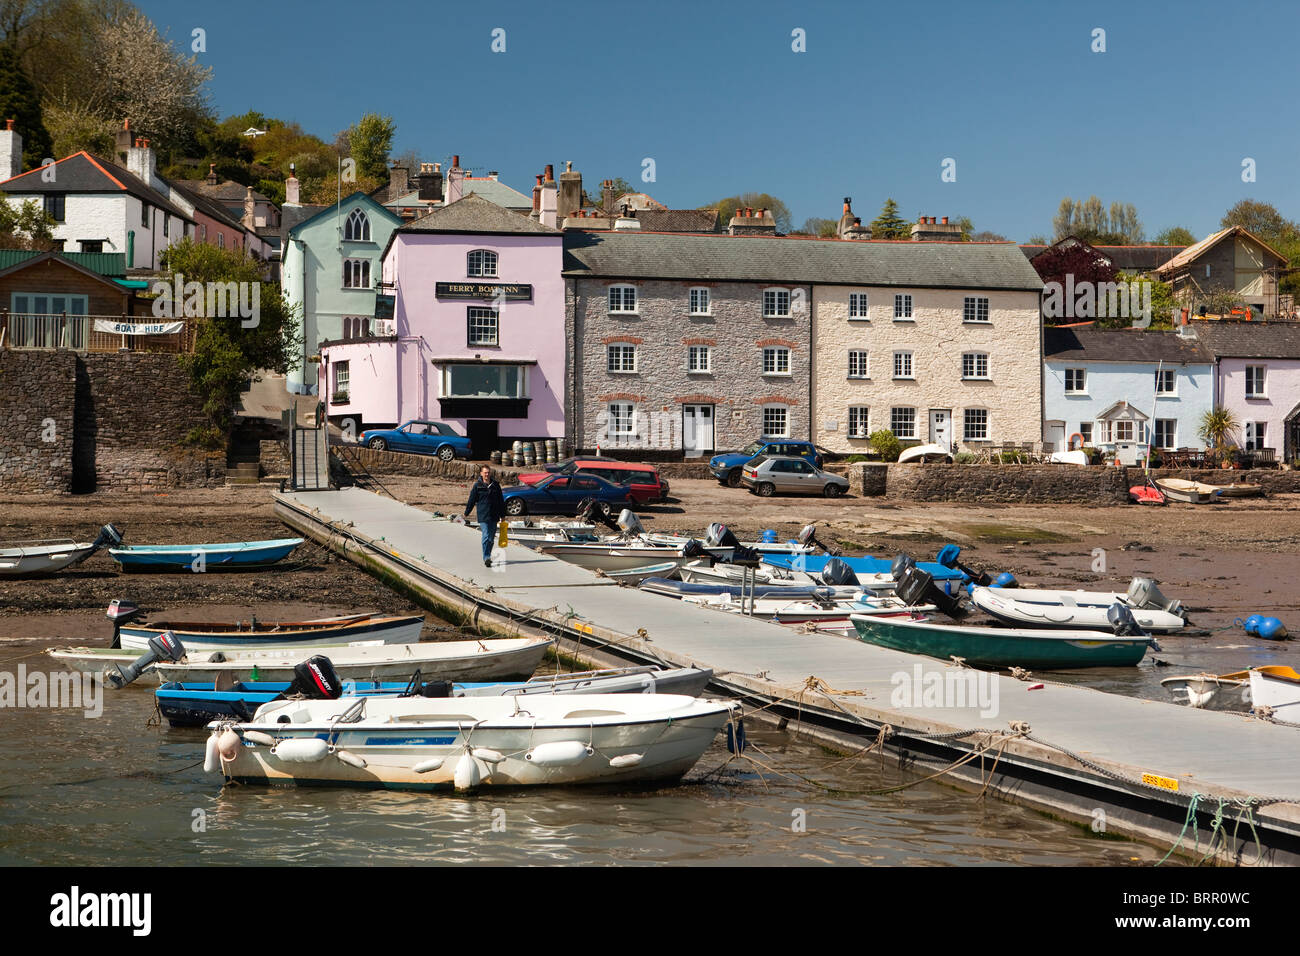 UK, England, Devon, Dittisham, boats moored in front of colourfully painted riverside houses on the Quay Stock Photo